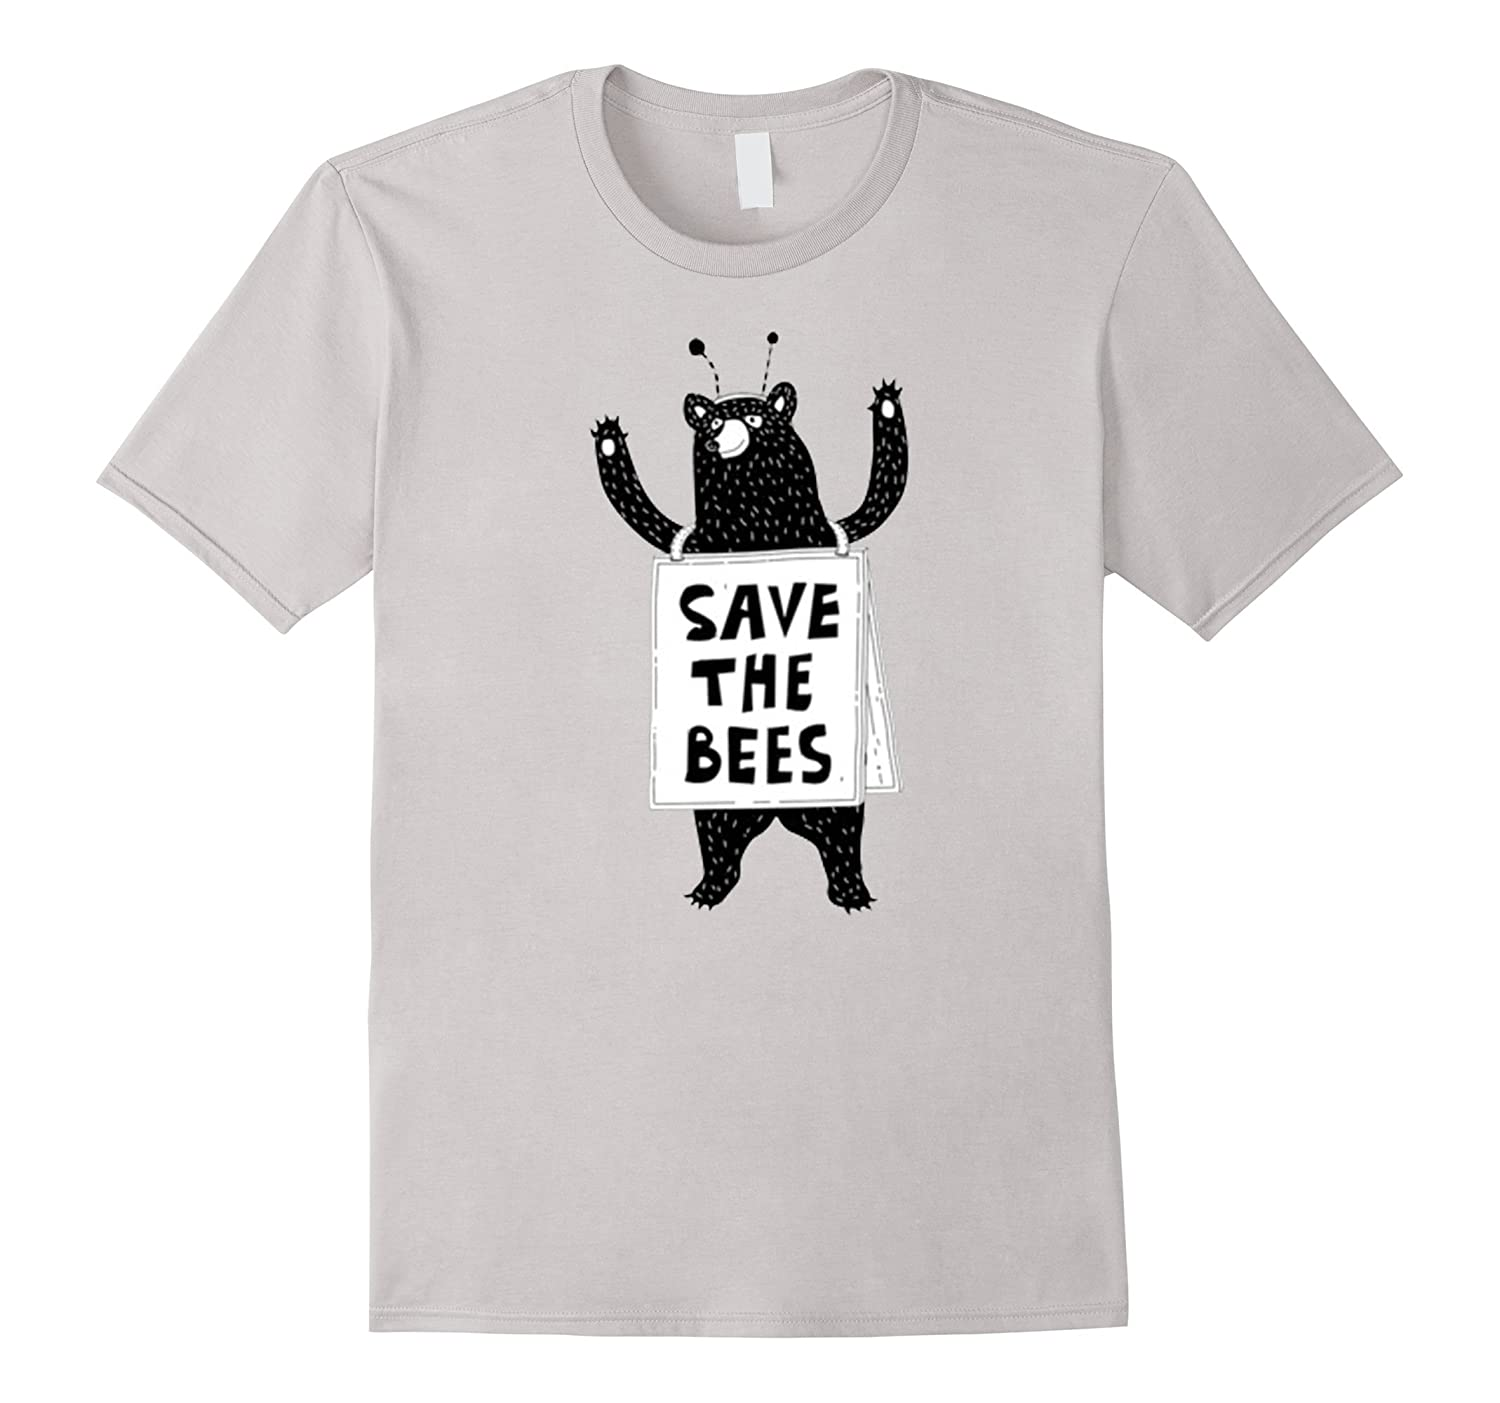 Save The Bees Honeybees Grizzly Bear Cartoon T Shirt-ah my shirt one gift